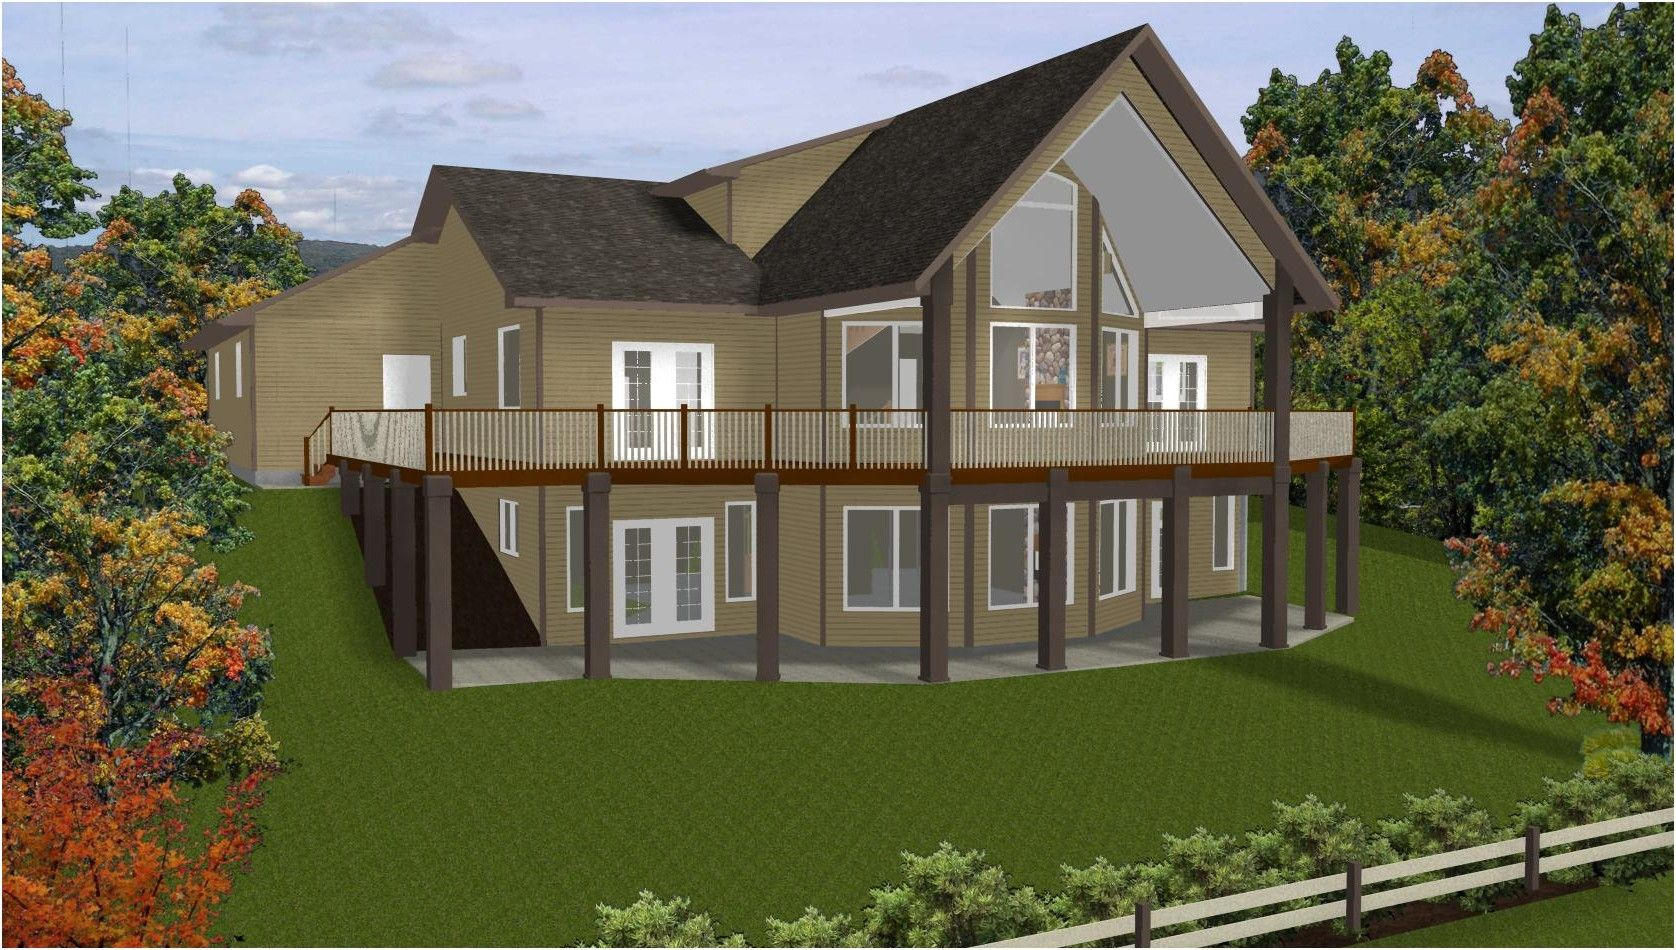 house plans hillside house plans 1 5 story house plans with from 1